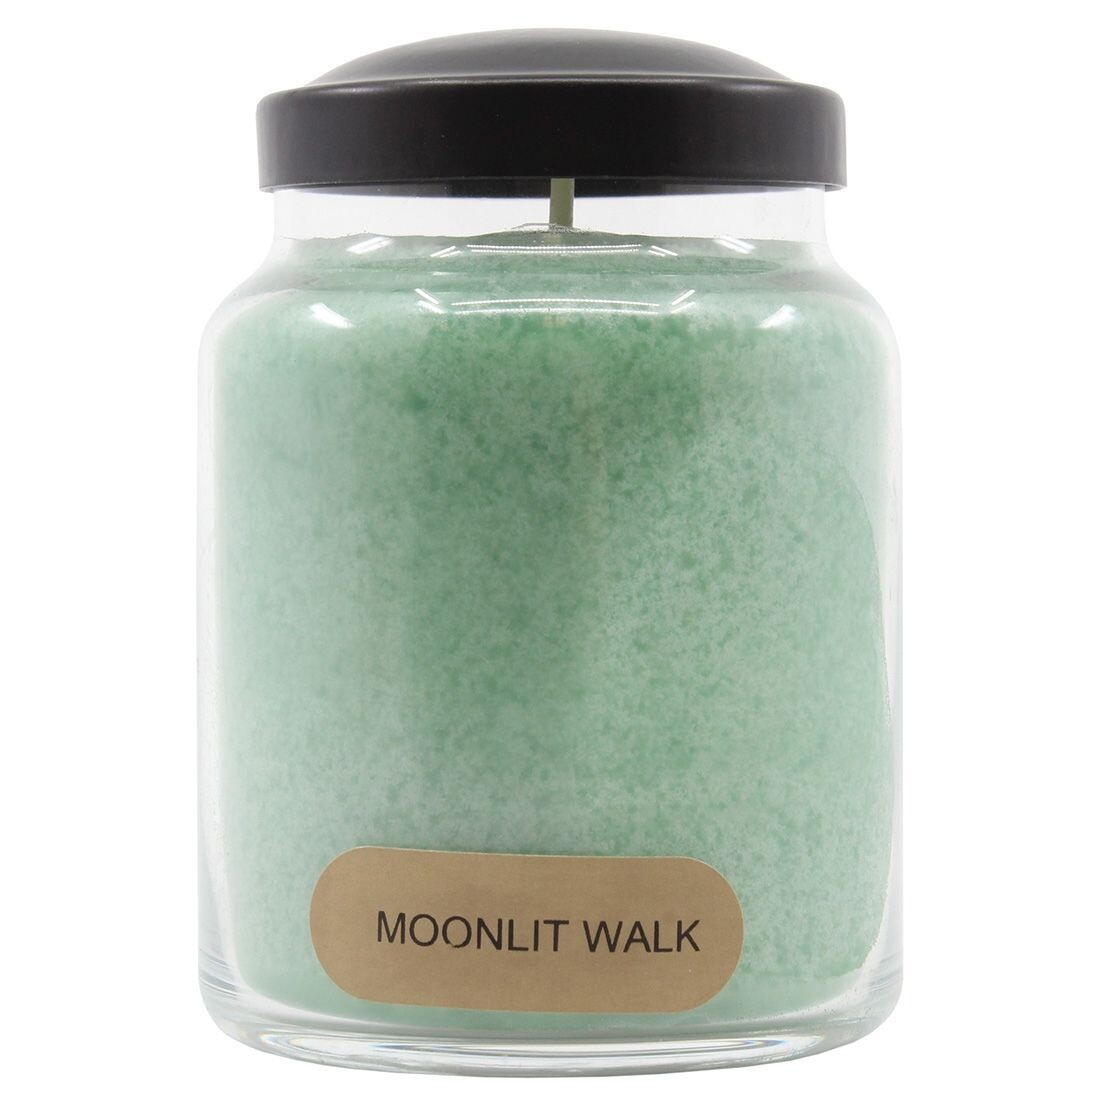 Moonlit Walk - Baby Jar - 6 oz - Keepers of the Light Candle